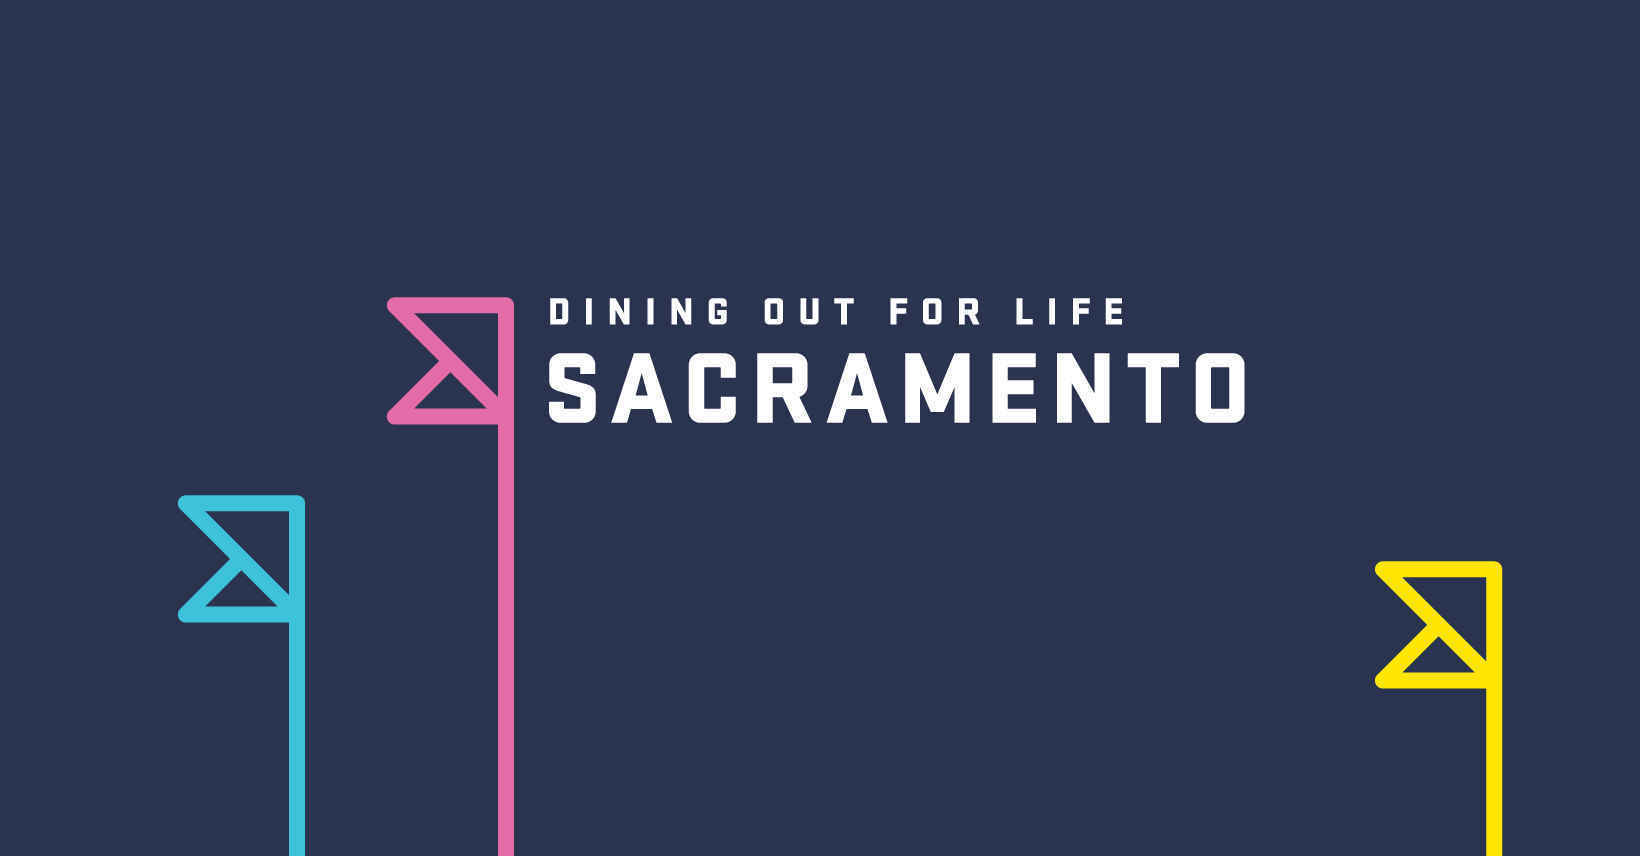 Donate to Dining Out For Life 2018 image